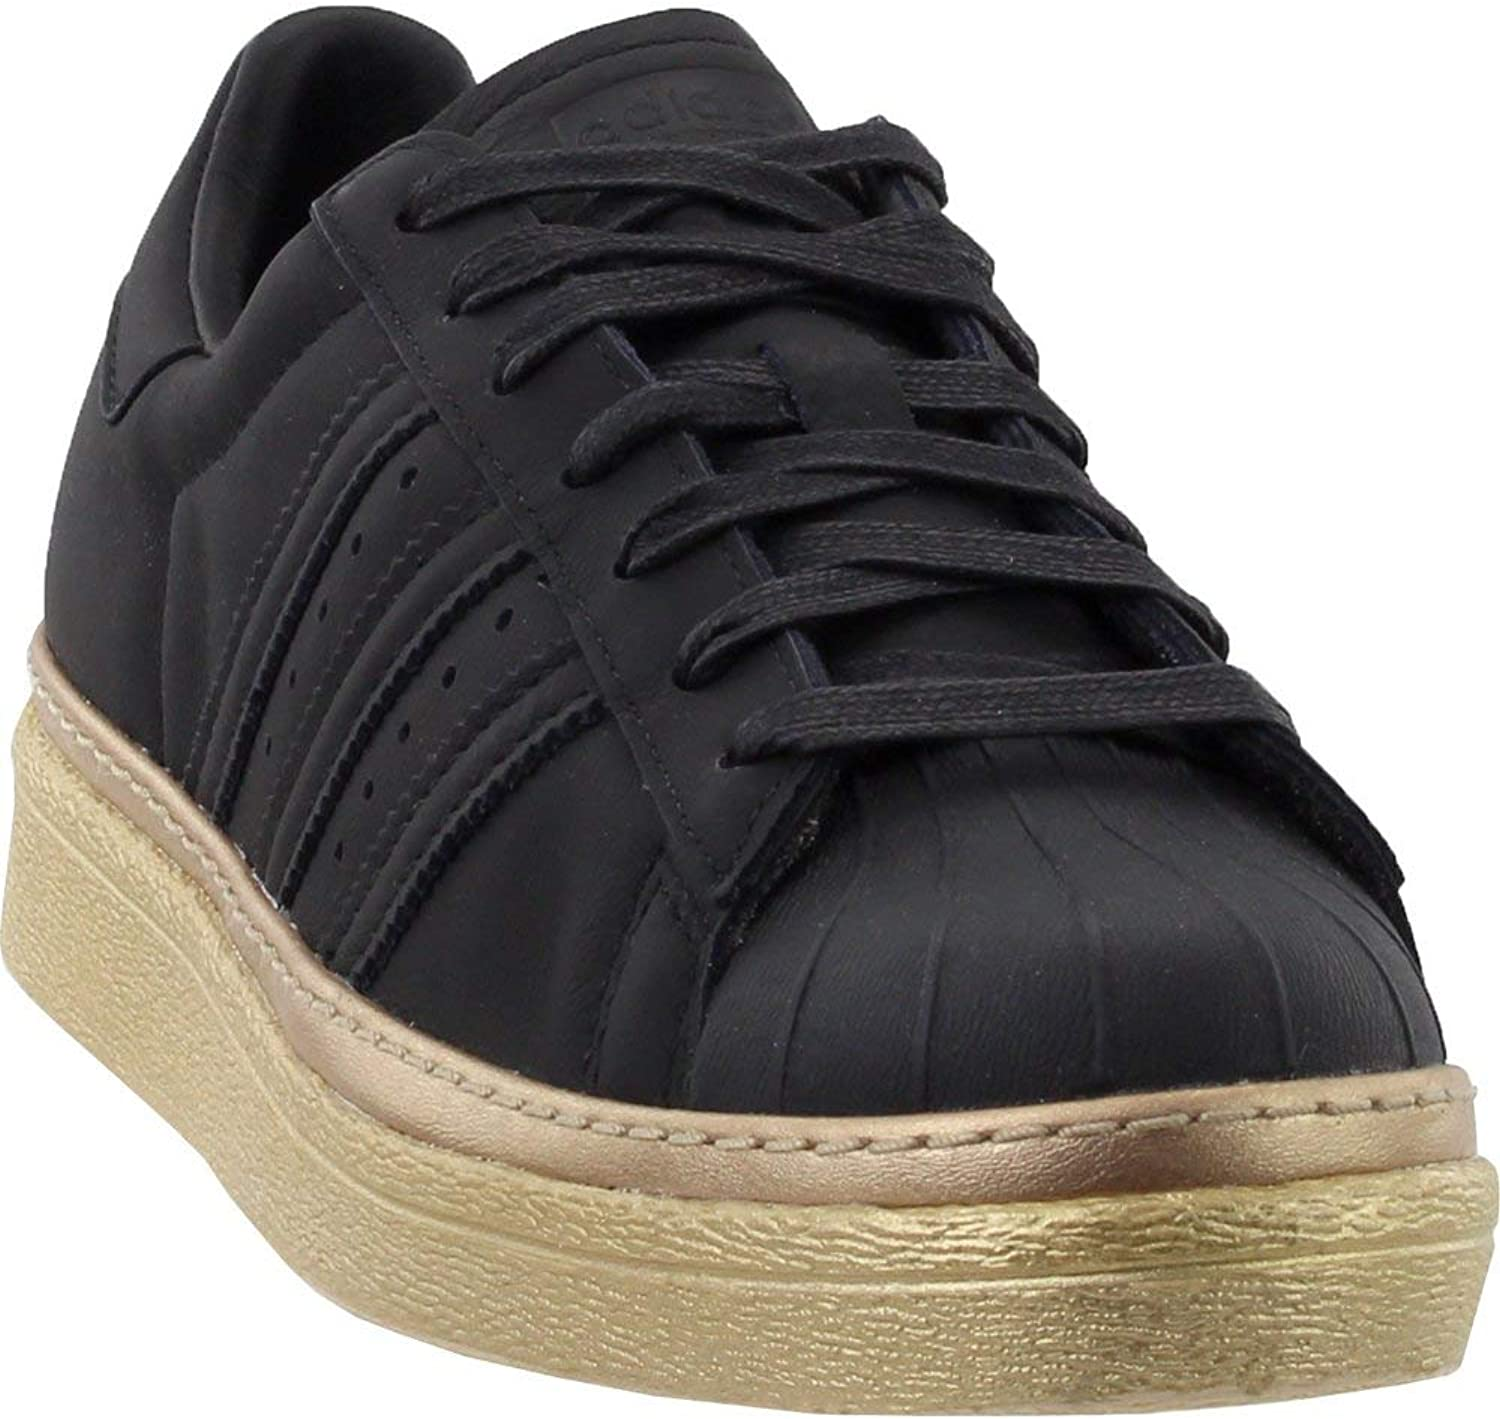 Adidas Womens Superstar 80s New Bold Casual Athletic & Sneakers